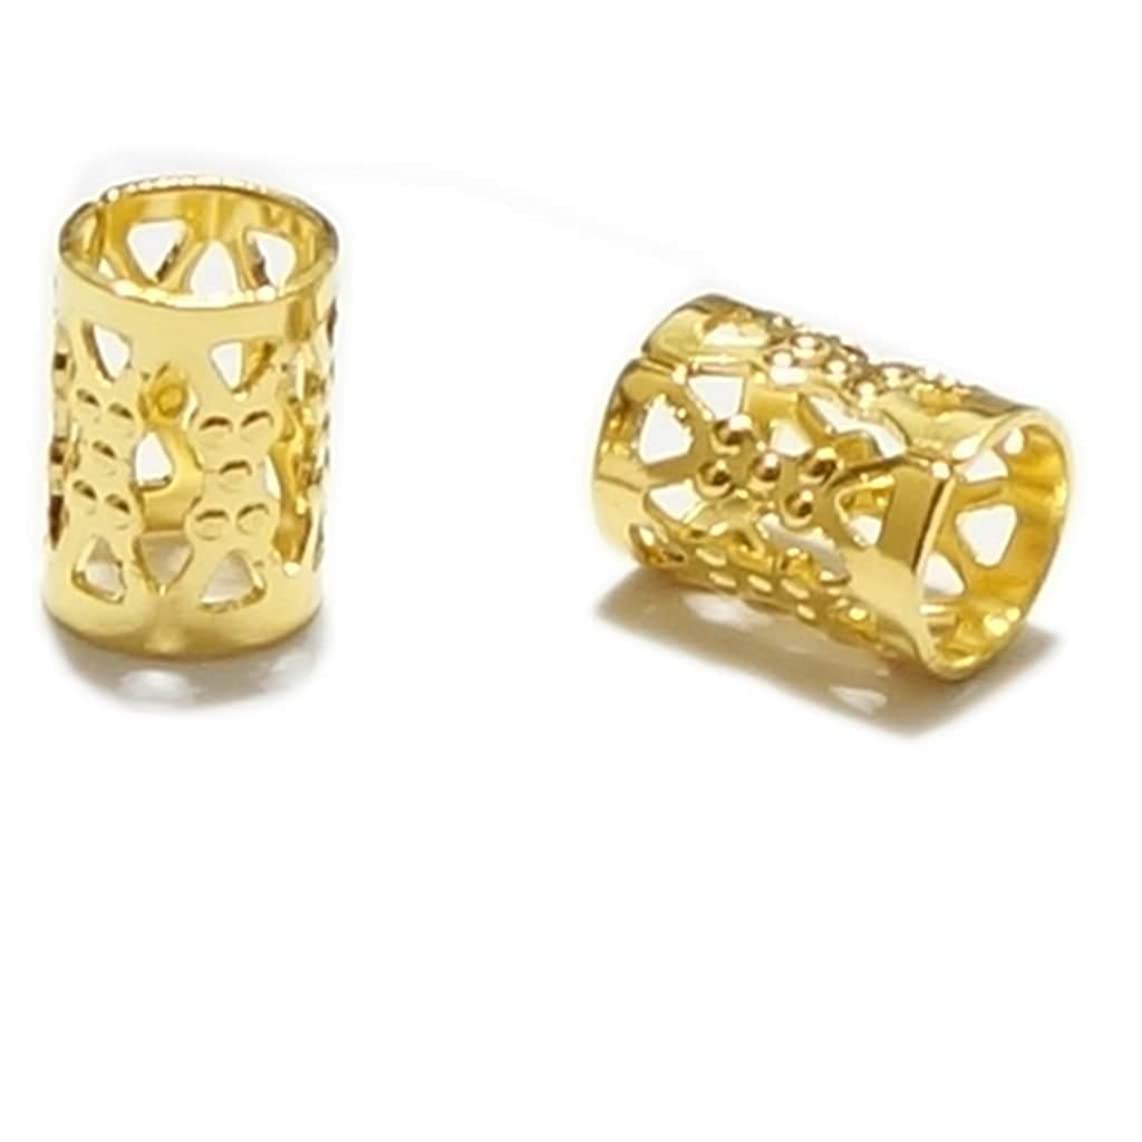 50pcs Top Quality 8mm Gold Plated Filigree Pattern Tubes Large Hole Spacer Beads (Hole ~4.9mm) CF106-G